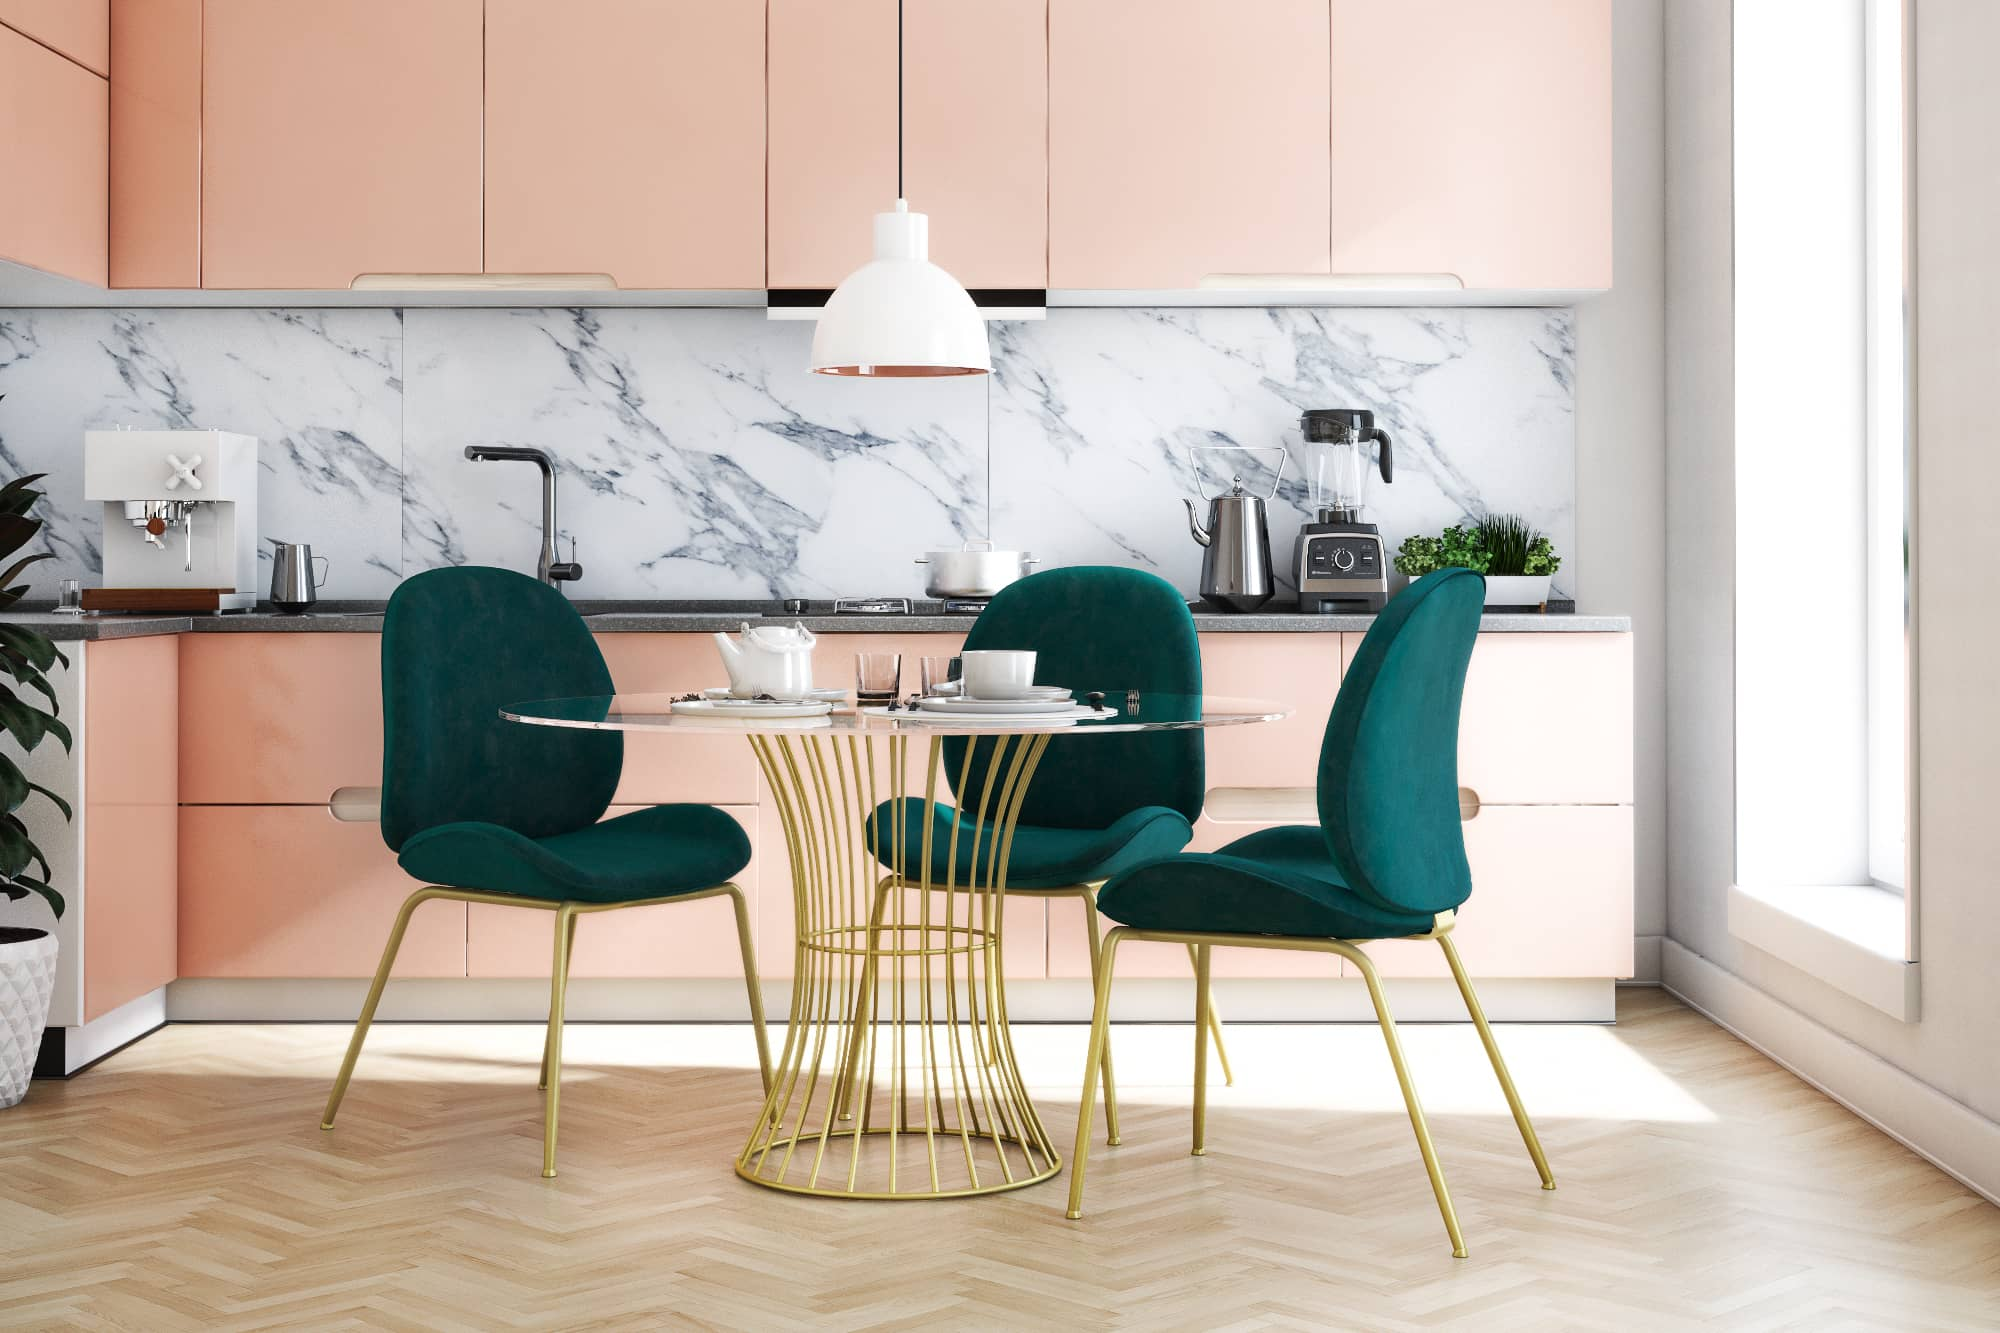 Amazing Cosmopolitan Just Launched A Home Decor Line For Small Spaces: Gallery  Image 1